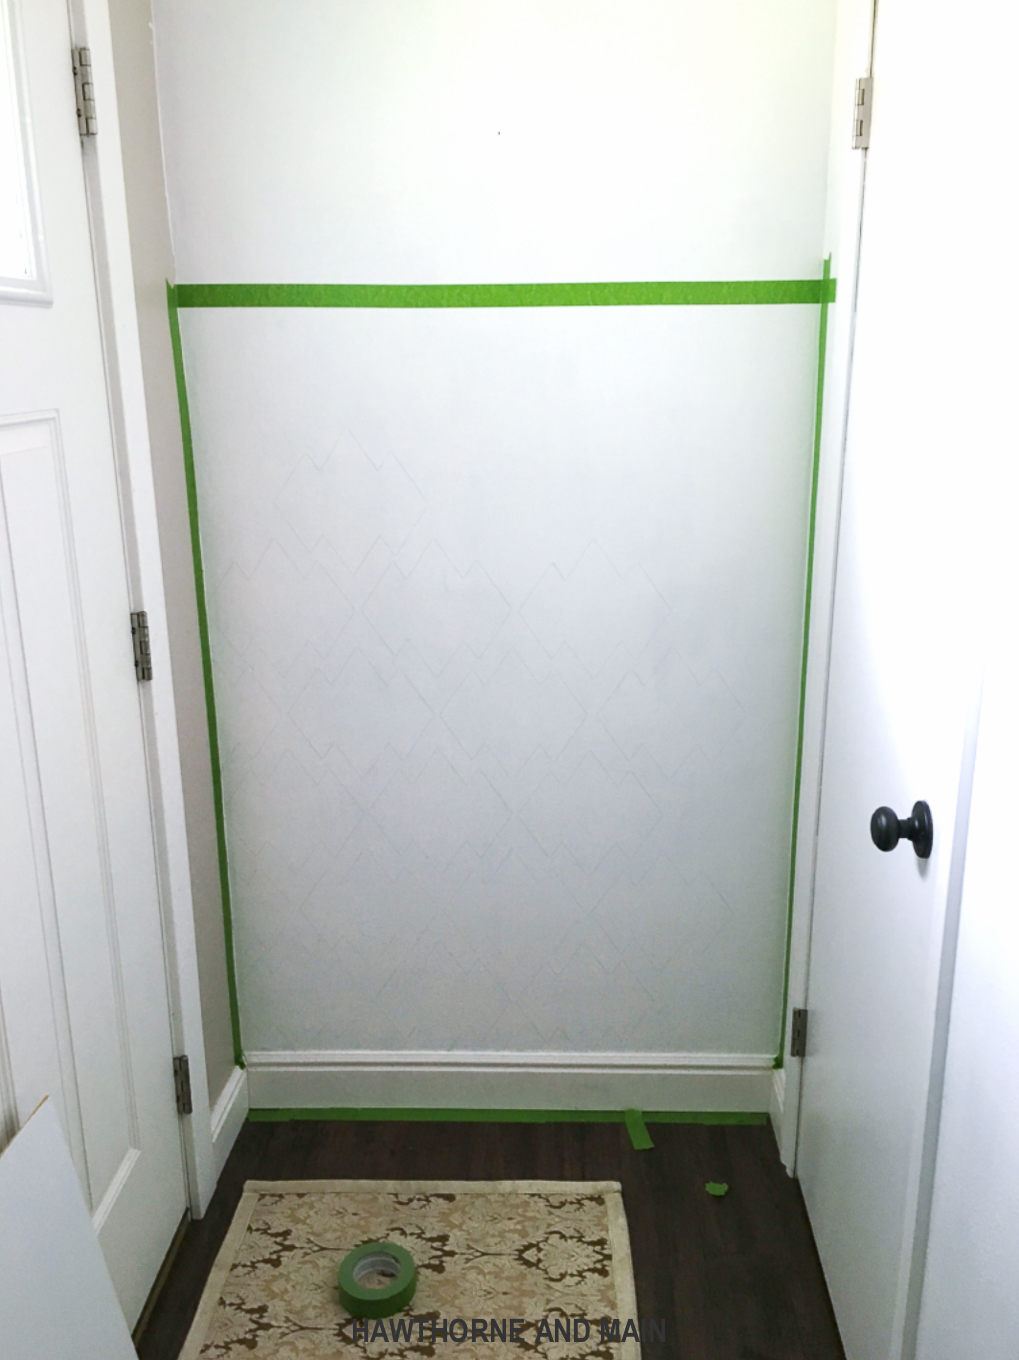 frog-tape-on-a-half-painted-wall